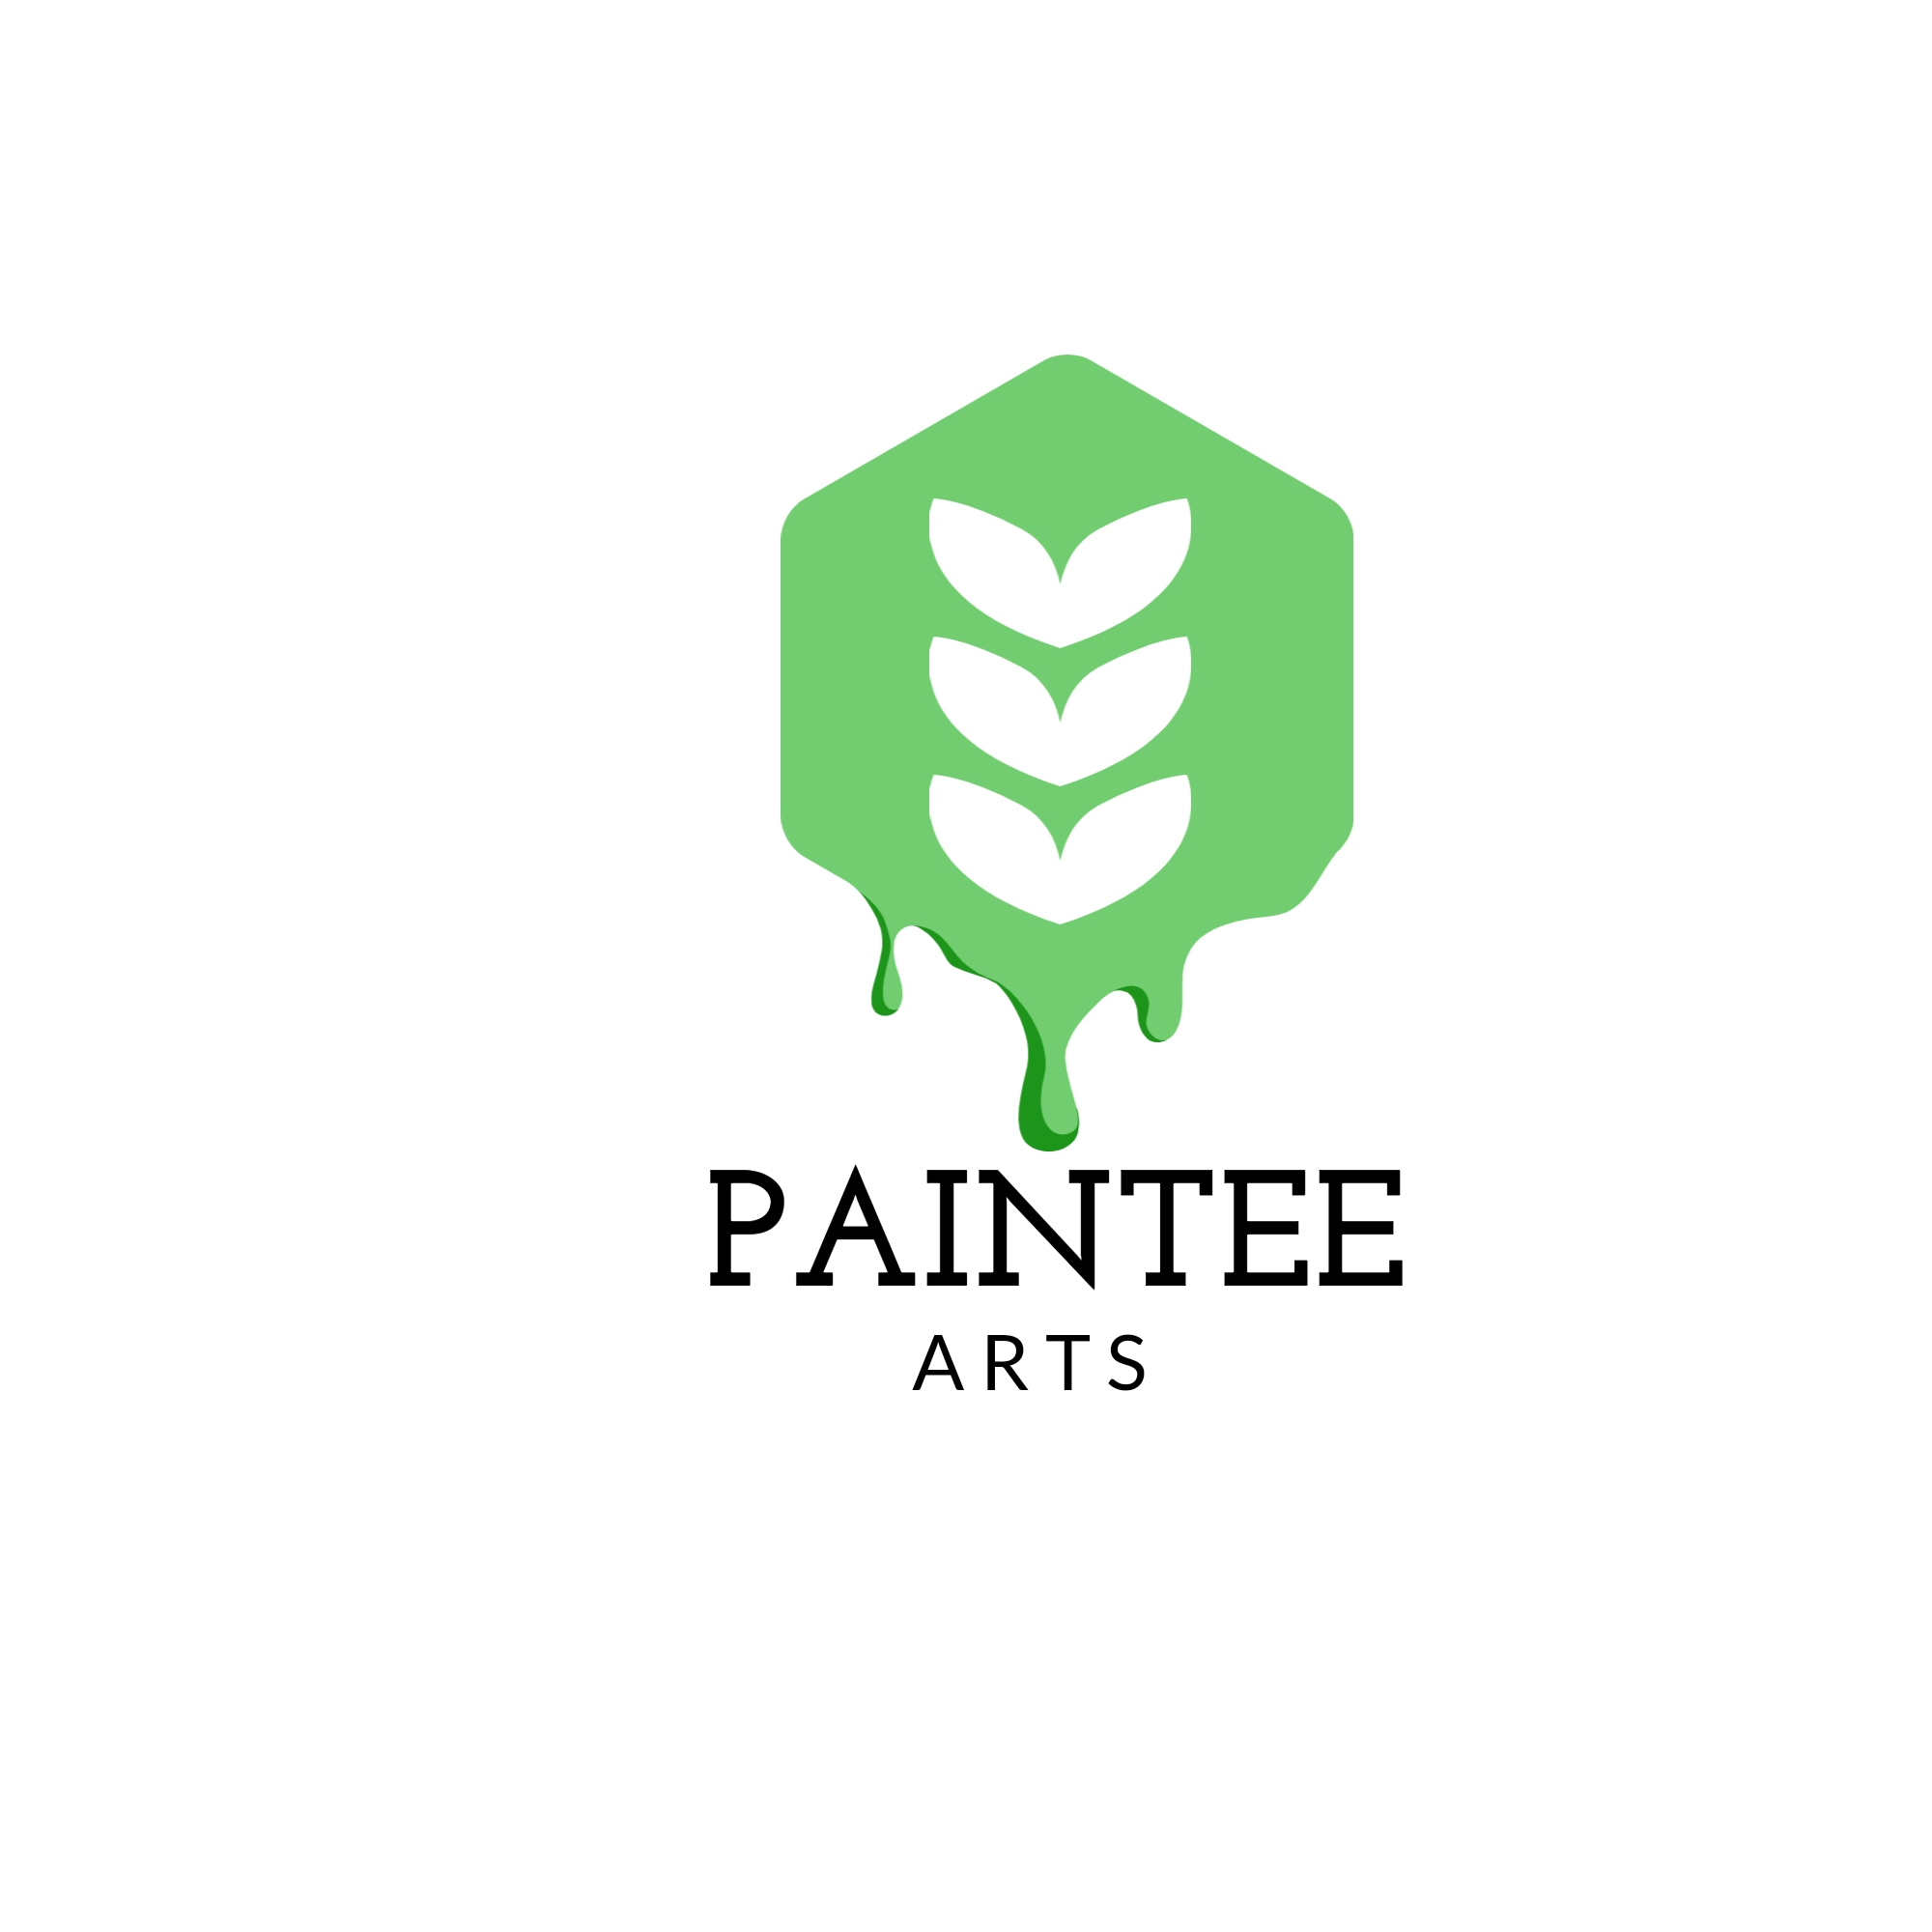 I can make a logo design for your website